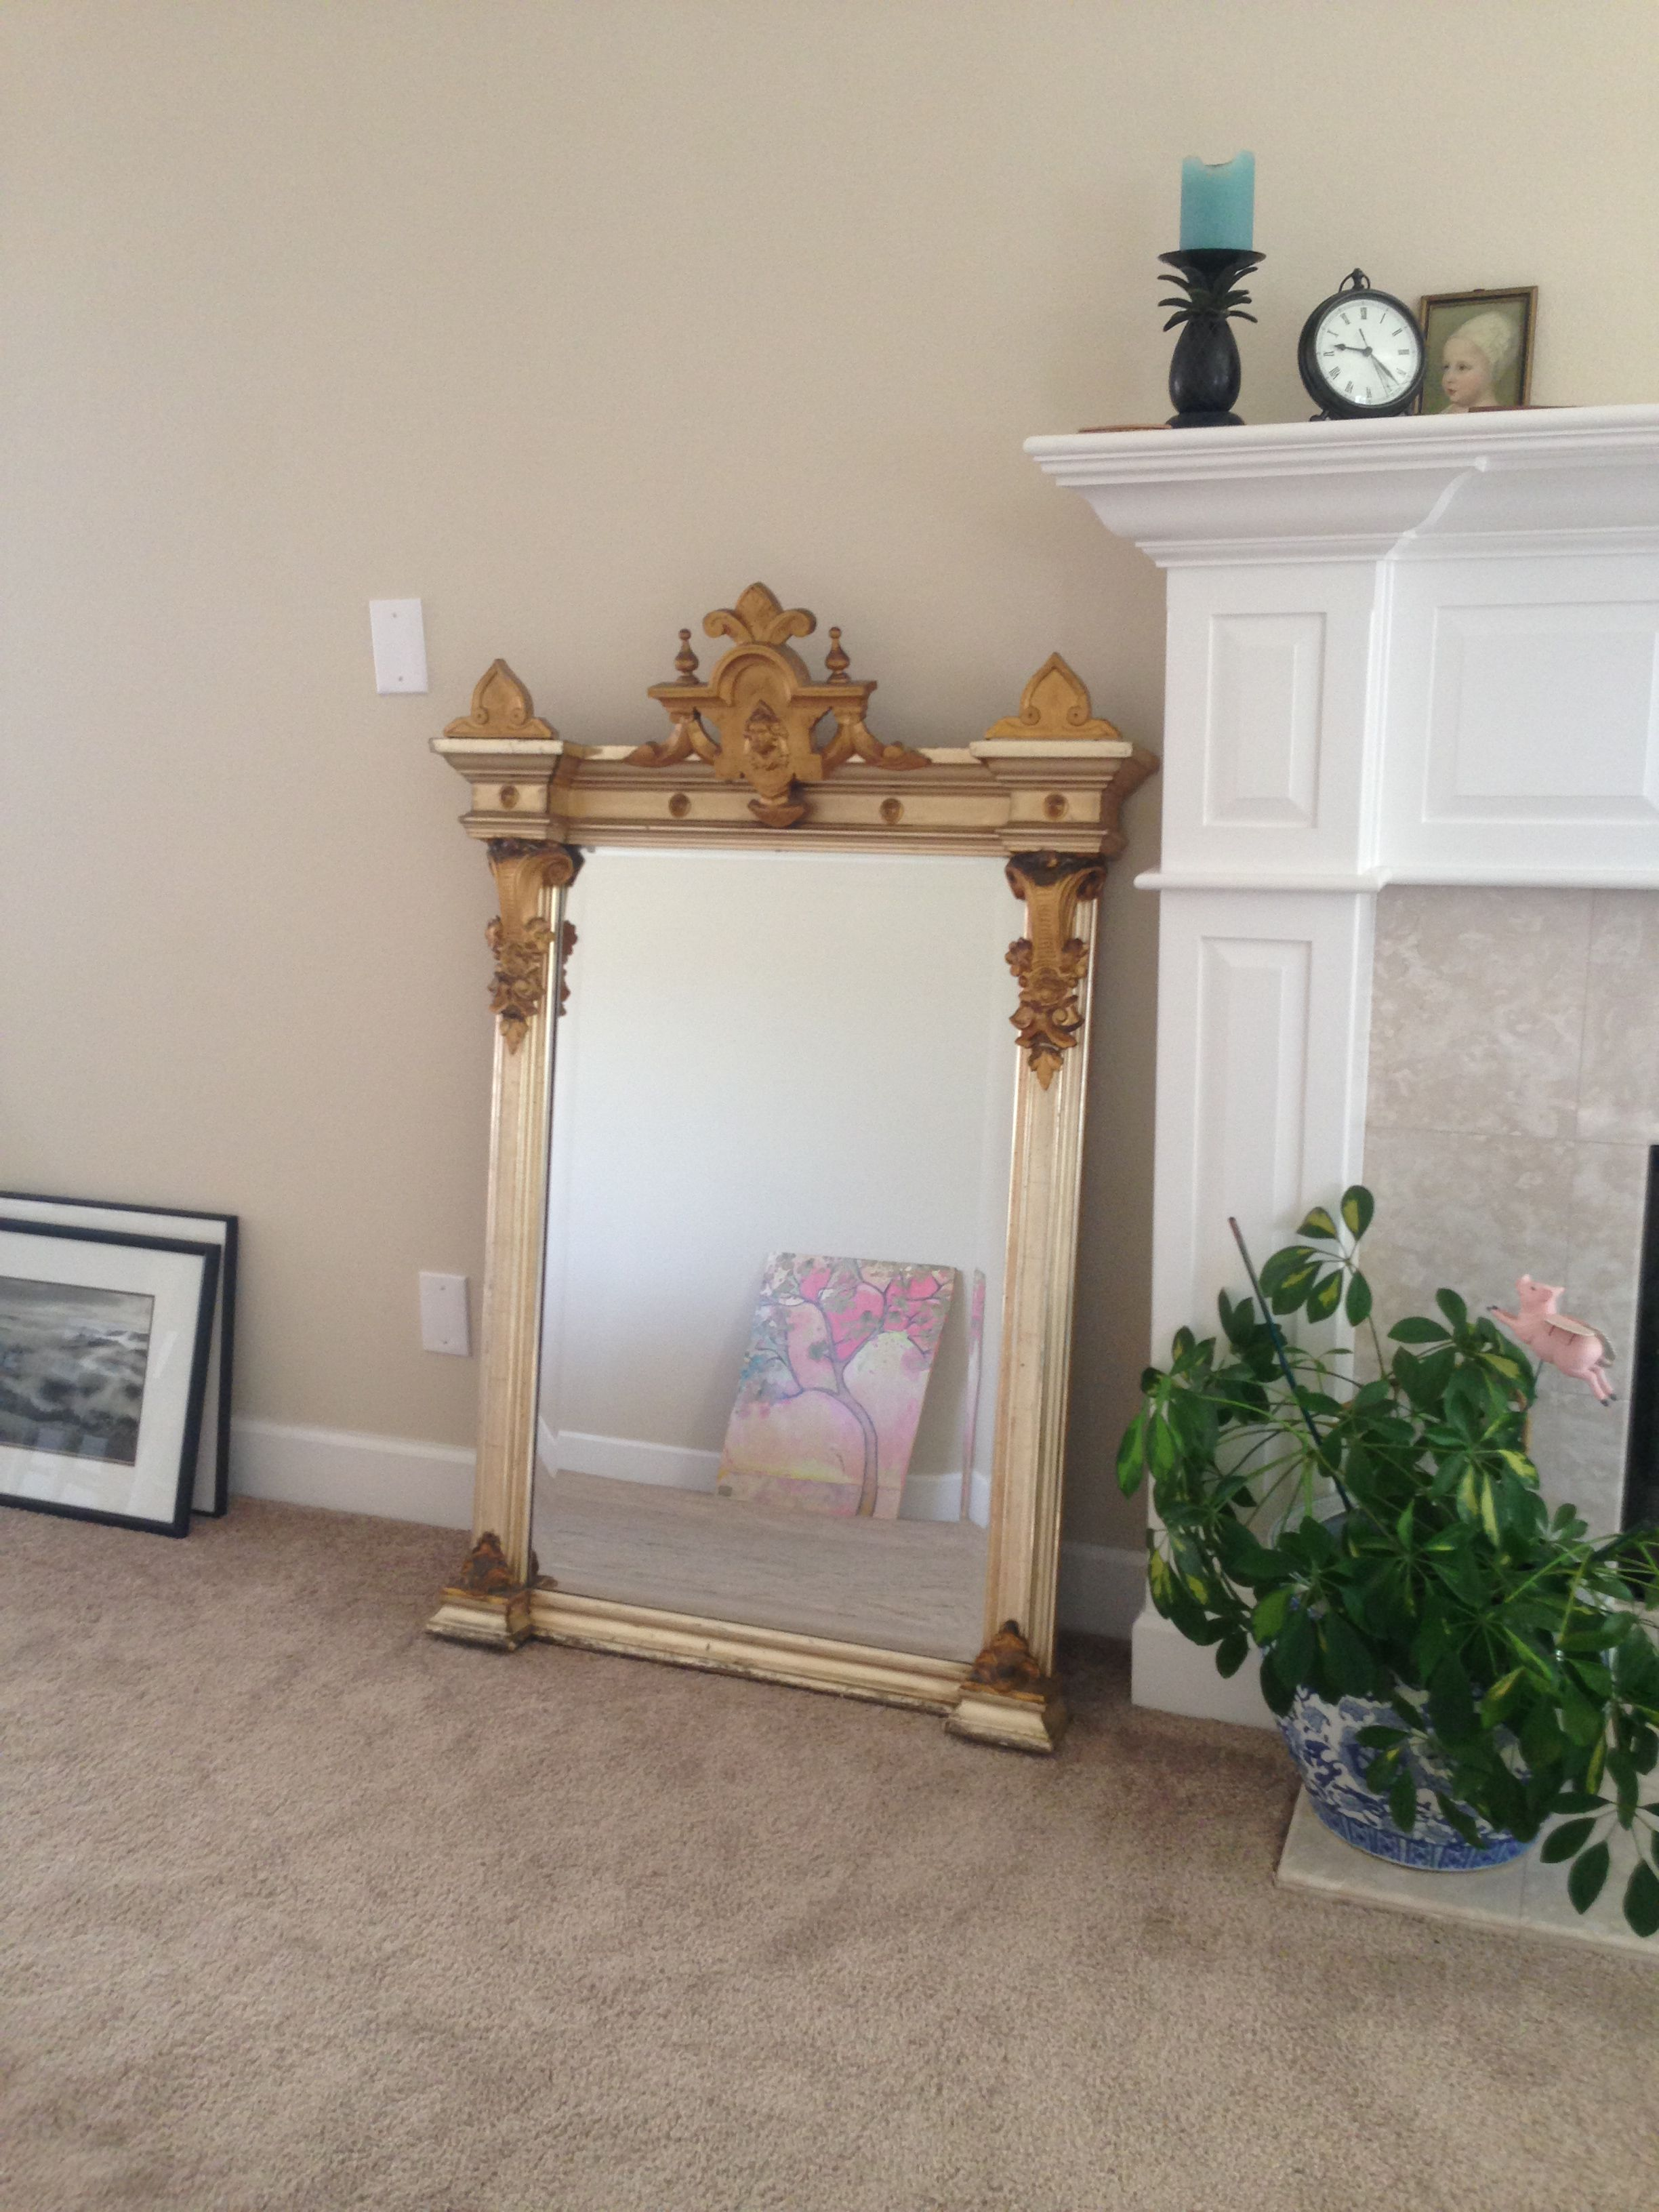 Wonderful Entry Hall Mirror In Search Of The Right Entry Hall Table To Go With It.